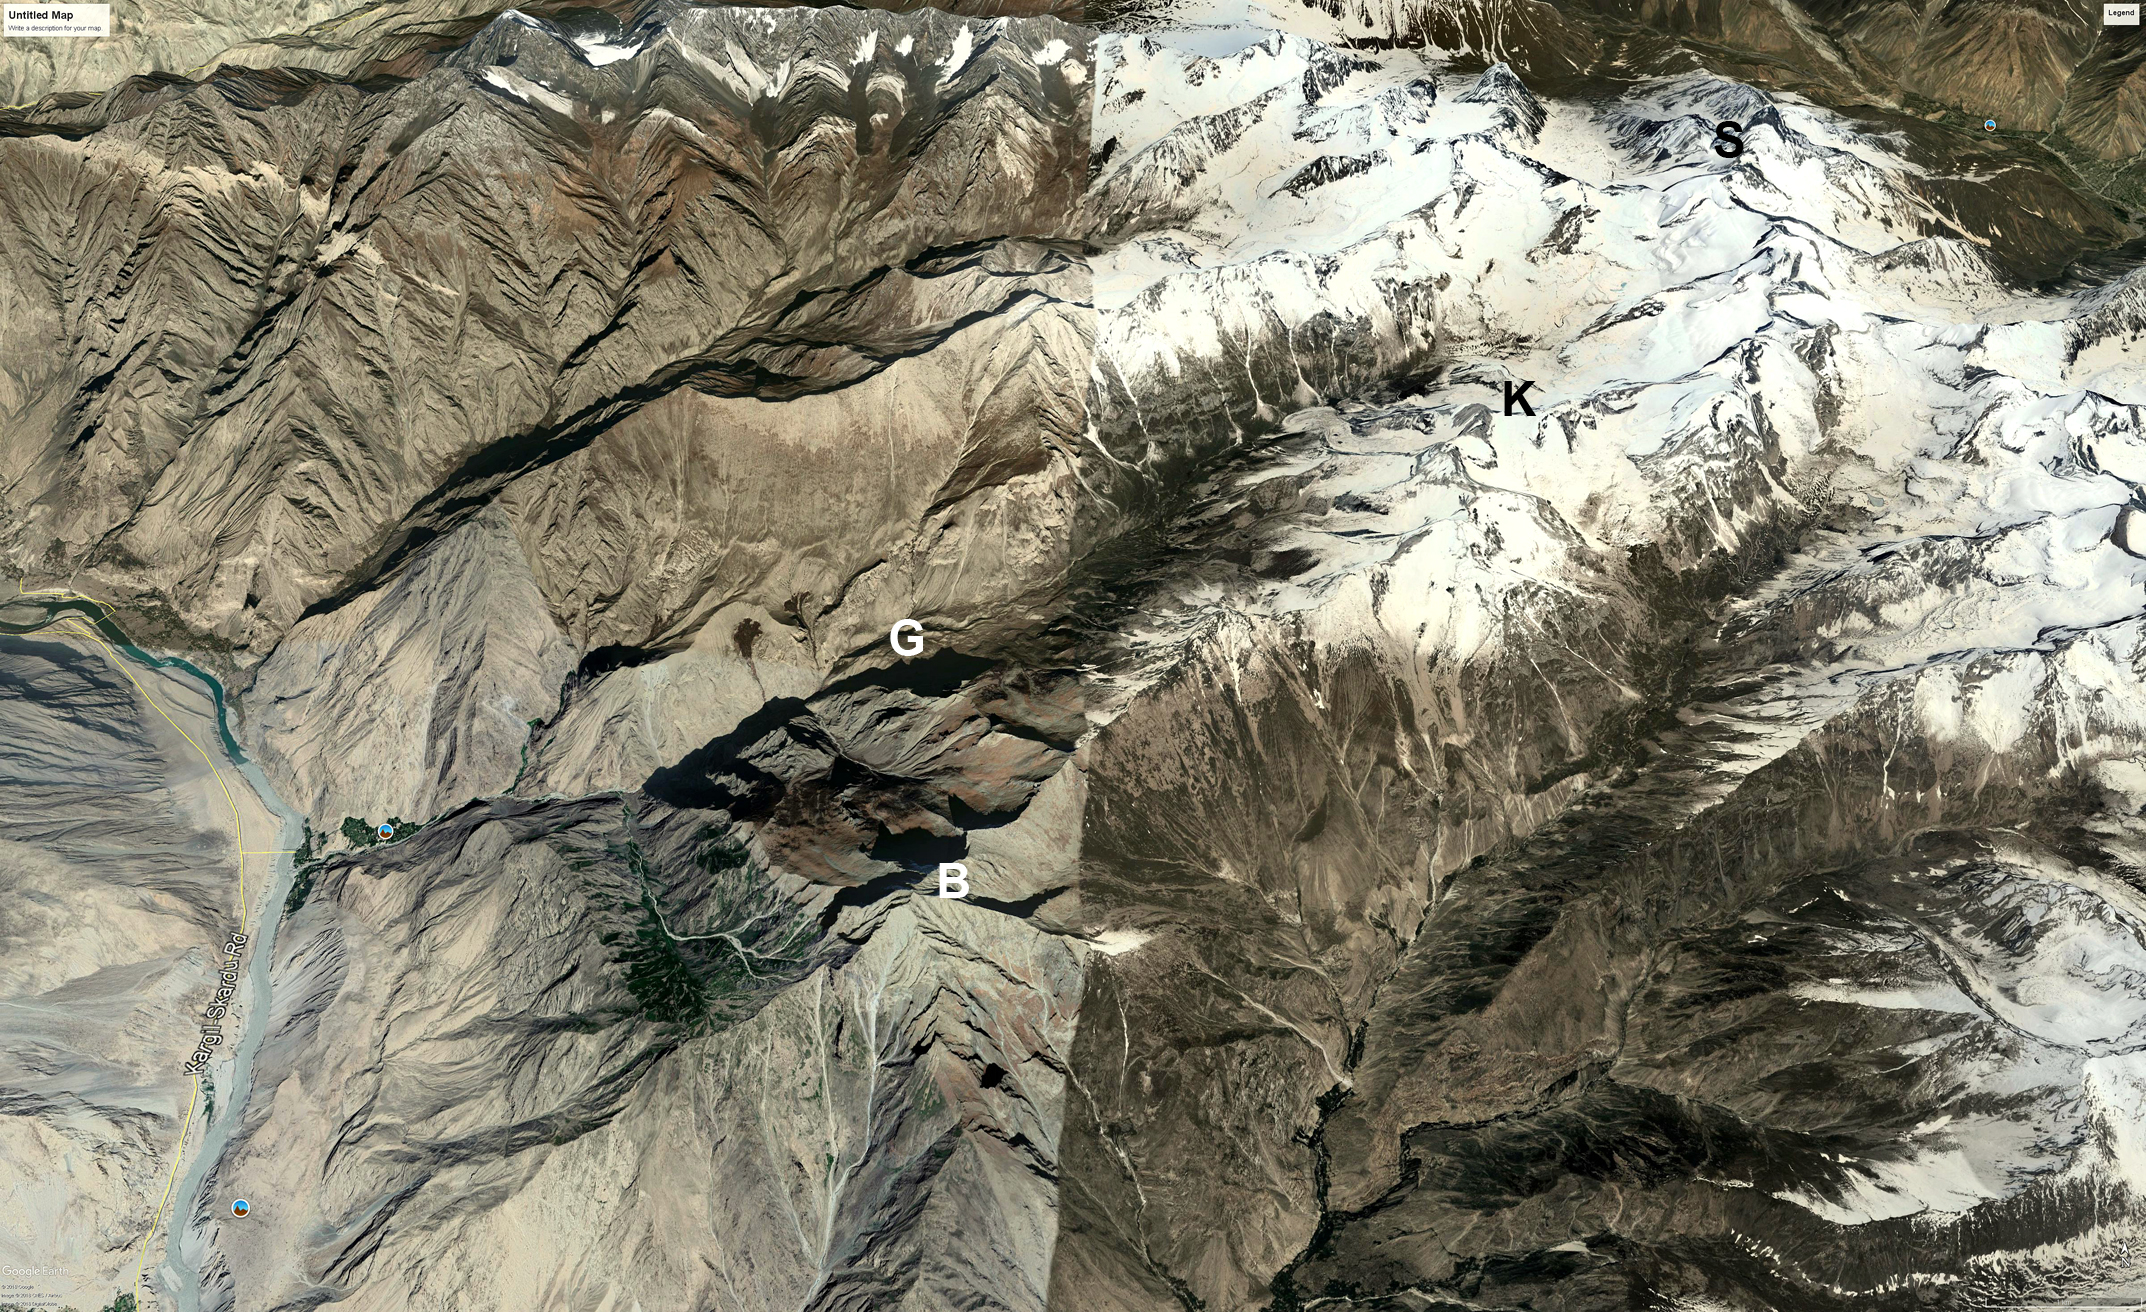 Part of the Shimshak Mountains. The Ghoro Valley (G), east of Skardu, descends to the Indus River on the left. Top right is the Thalle Valley. (B) is a peak referred to on the Japanese Miyamori map as Brinzongar (around 5,200m). (K) Kiris Peak. (S) Snow Peak.